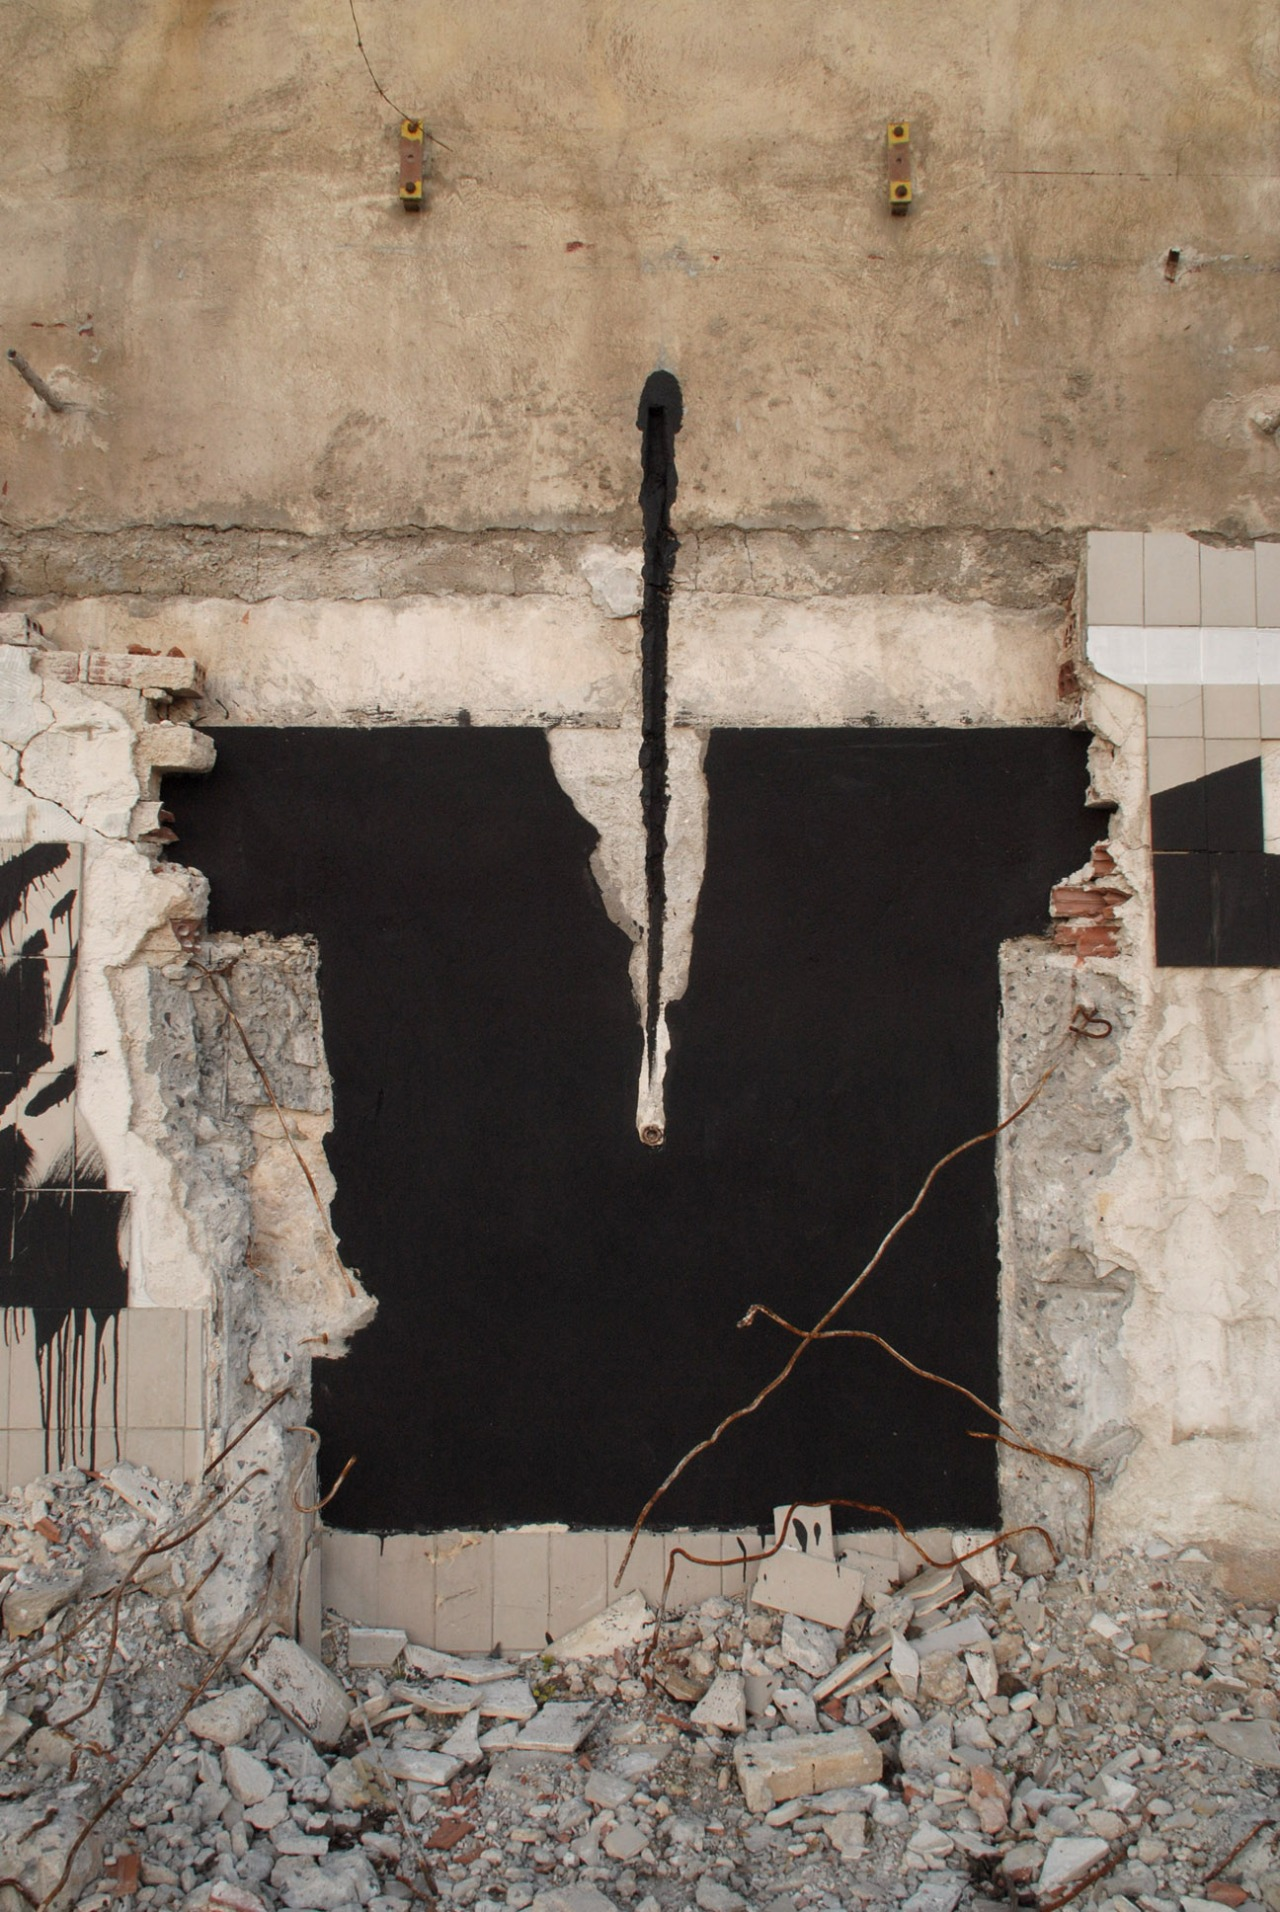 blaqk-new-mural-in-athens-greece-05